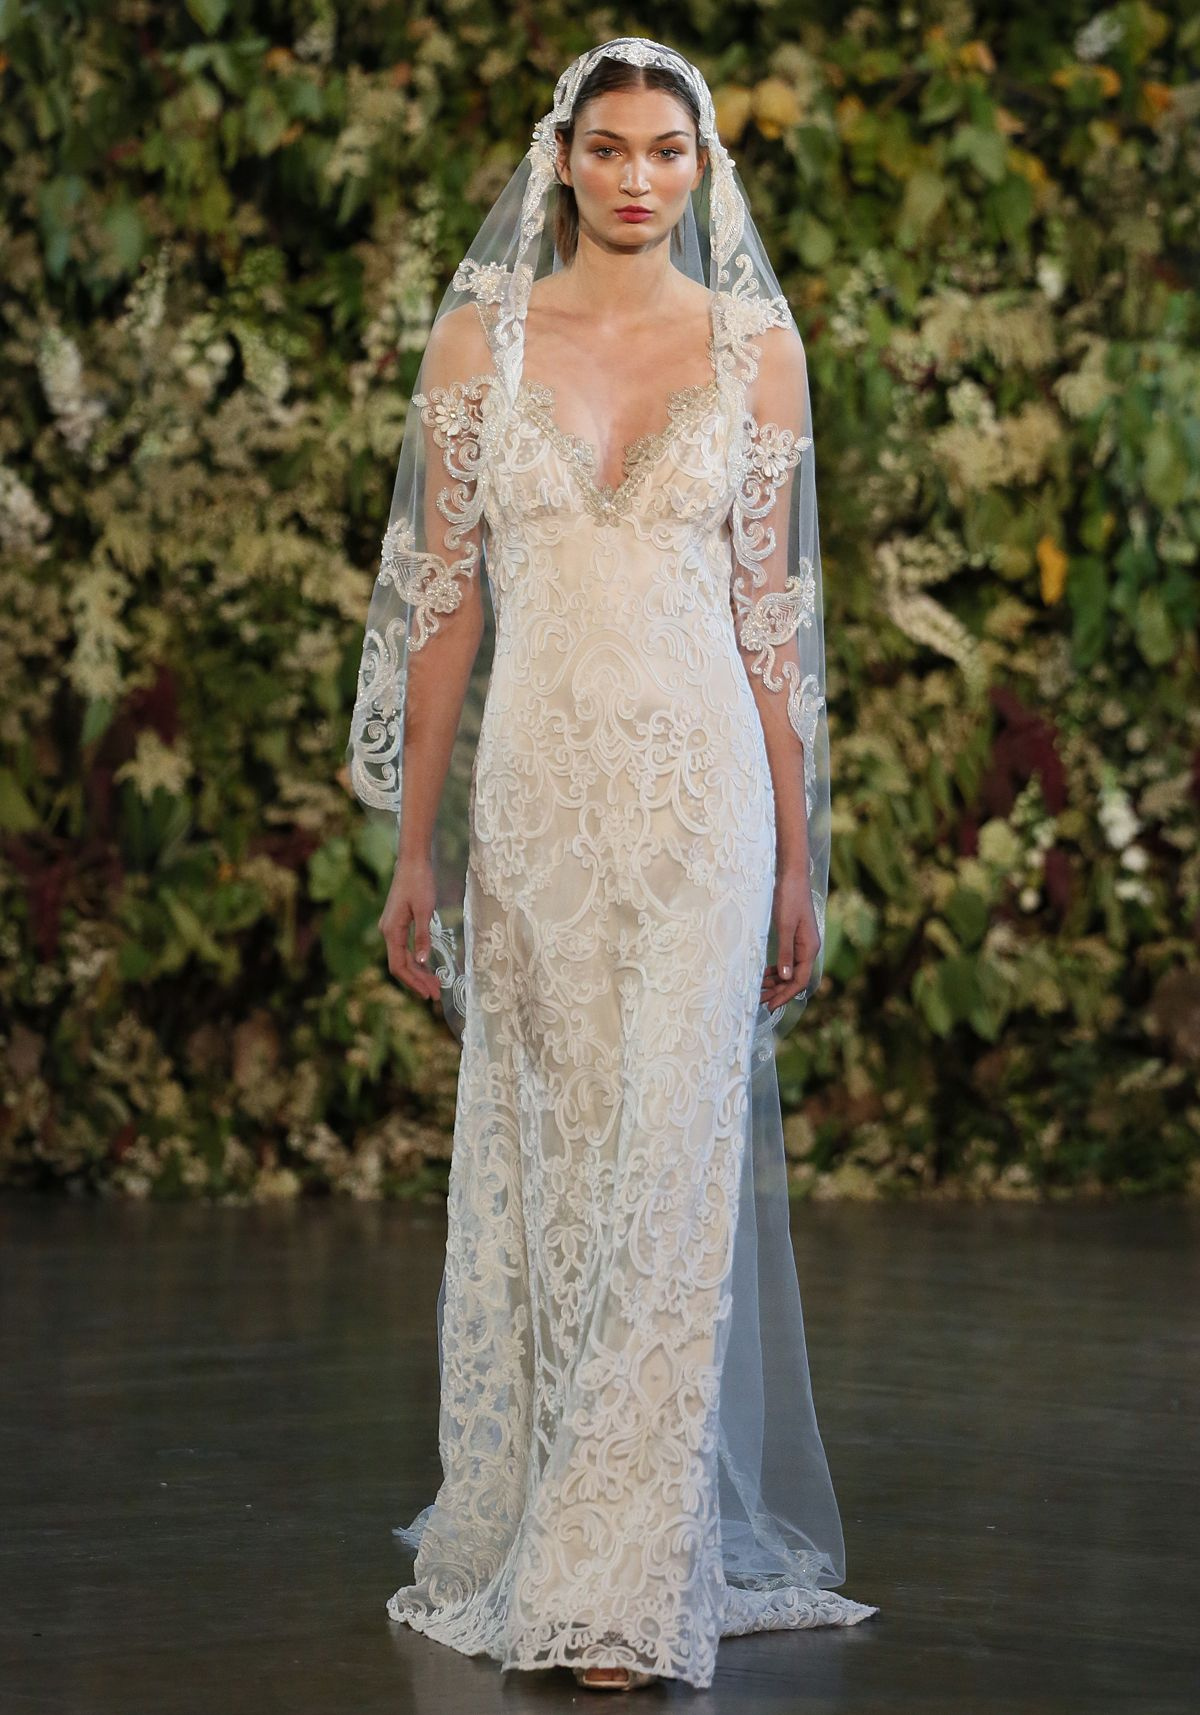 The best wedding dresses from the fall bridal collections